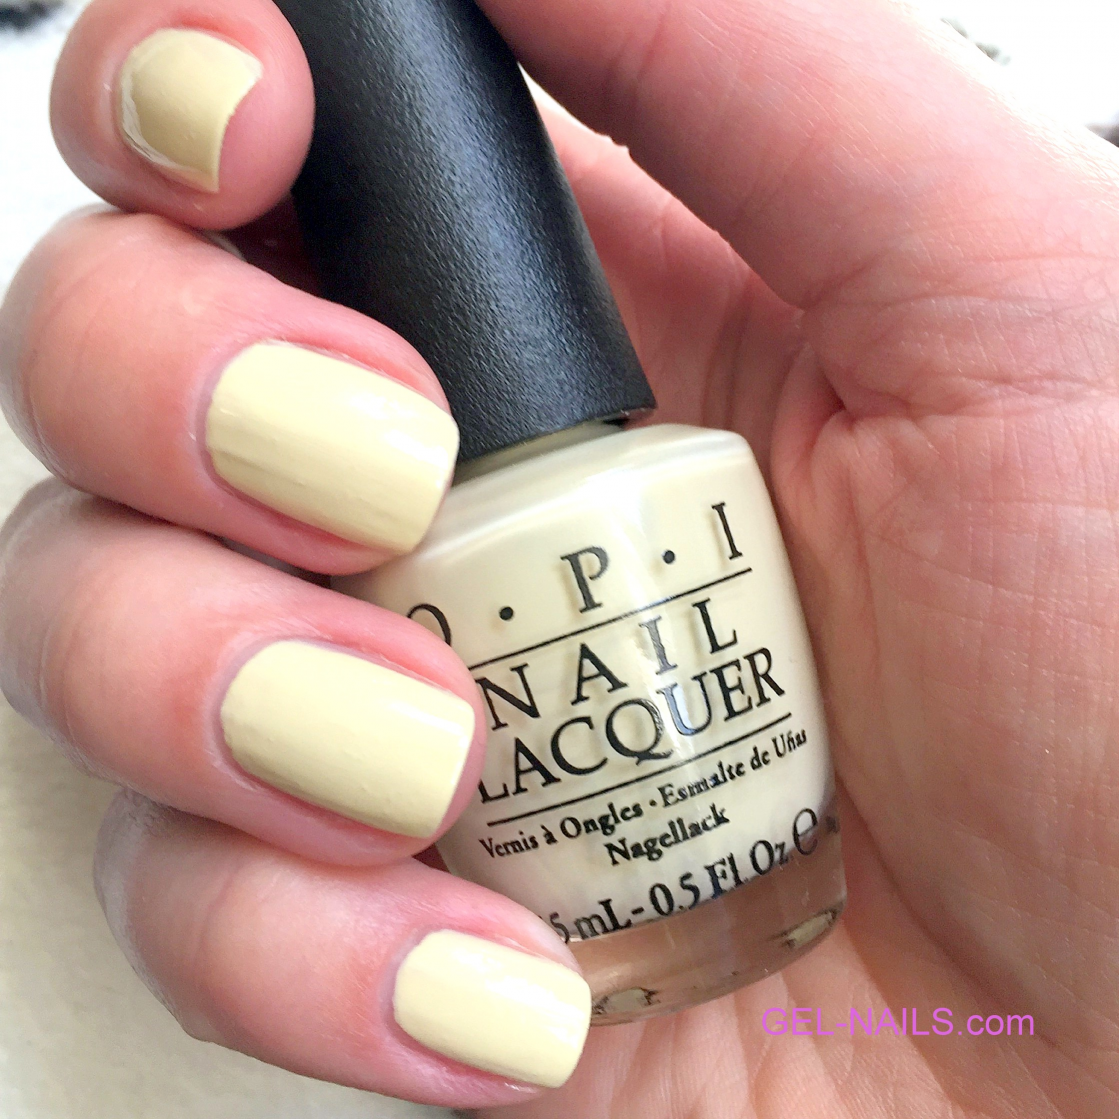 OPI Nail Lacquer One Chic Chick NLT73